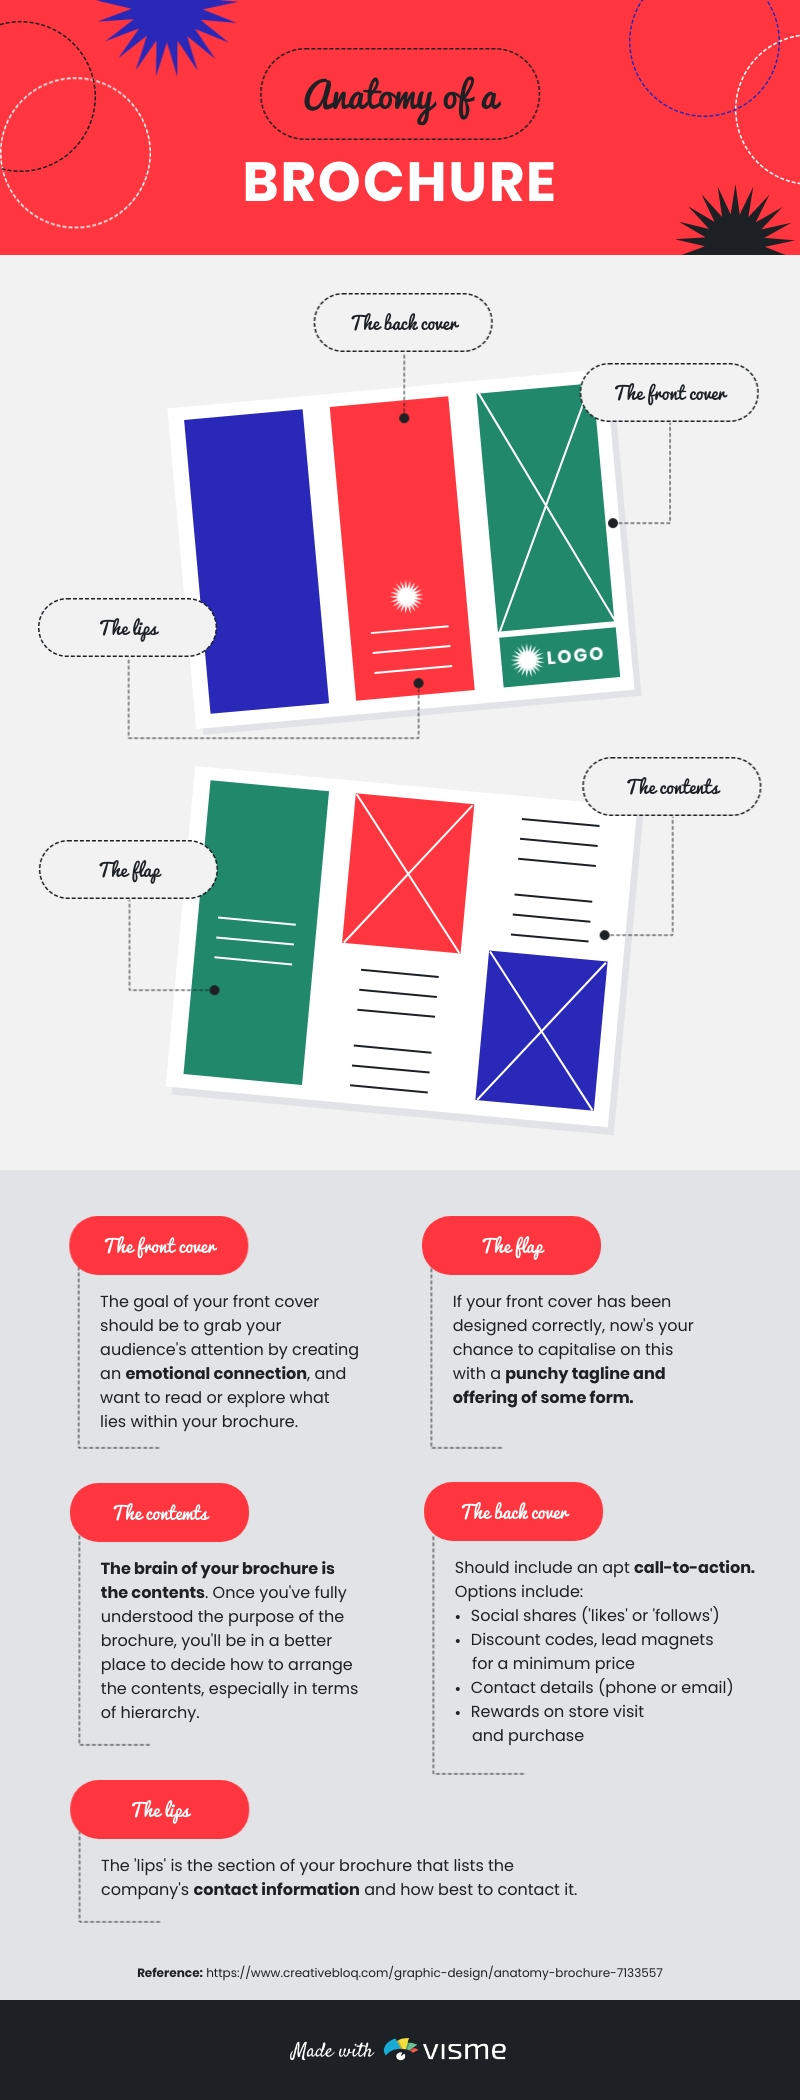 Anatomy of a Brochure Infographic